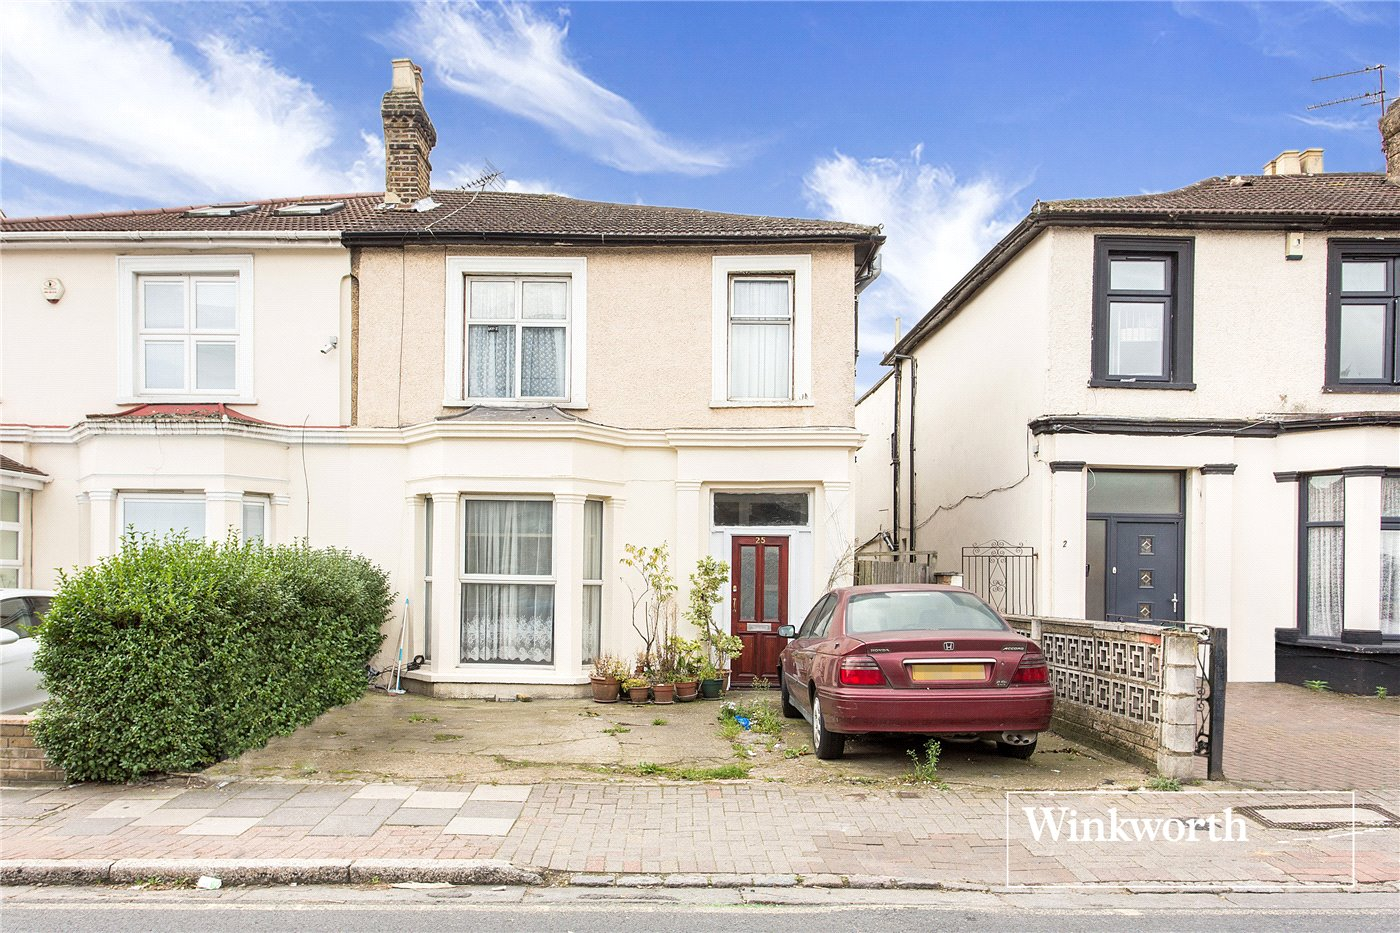 2 Bedrooms Flat for sale in Station Road, Finchley, London, N3